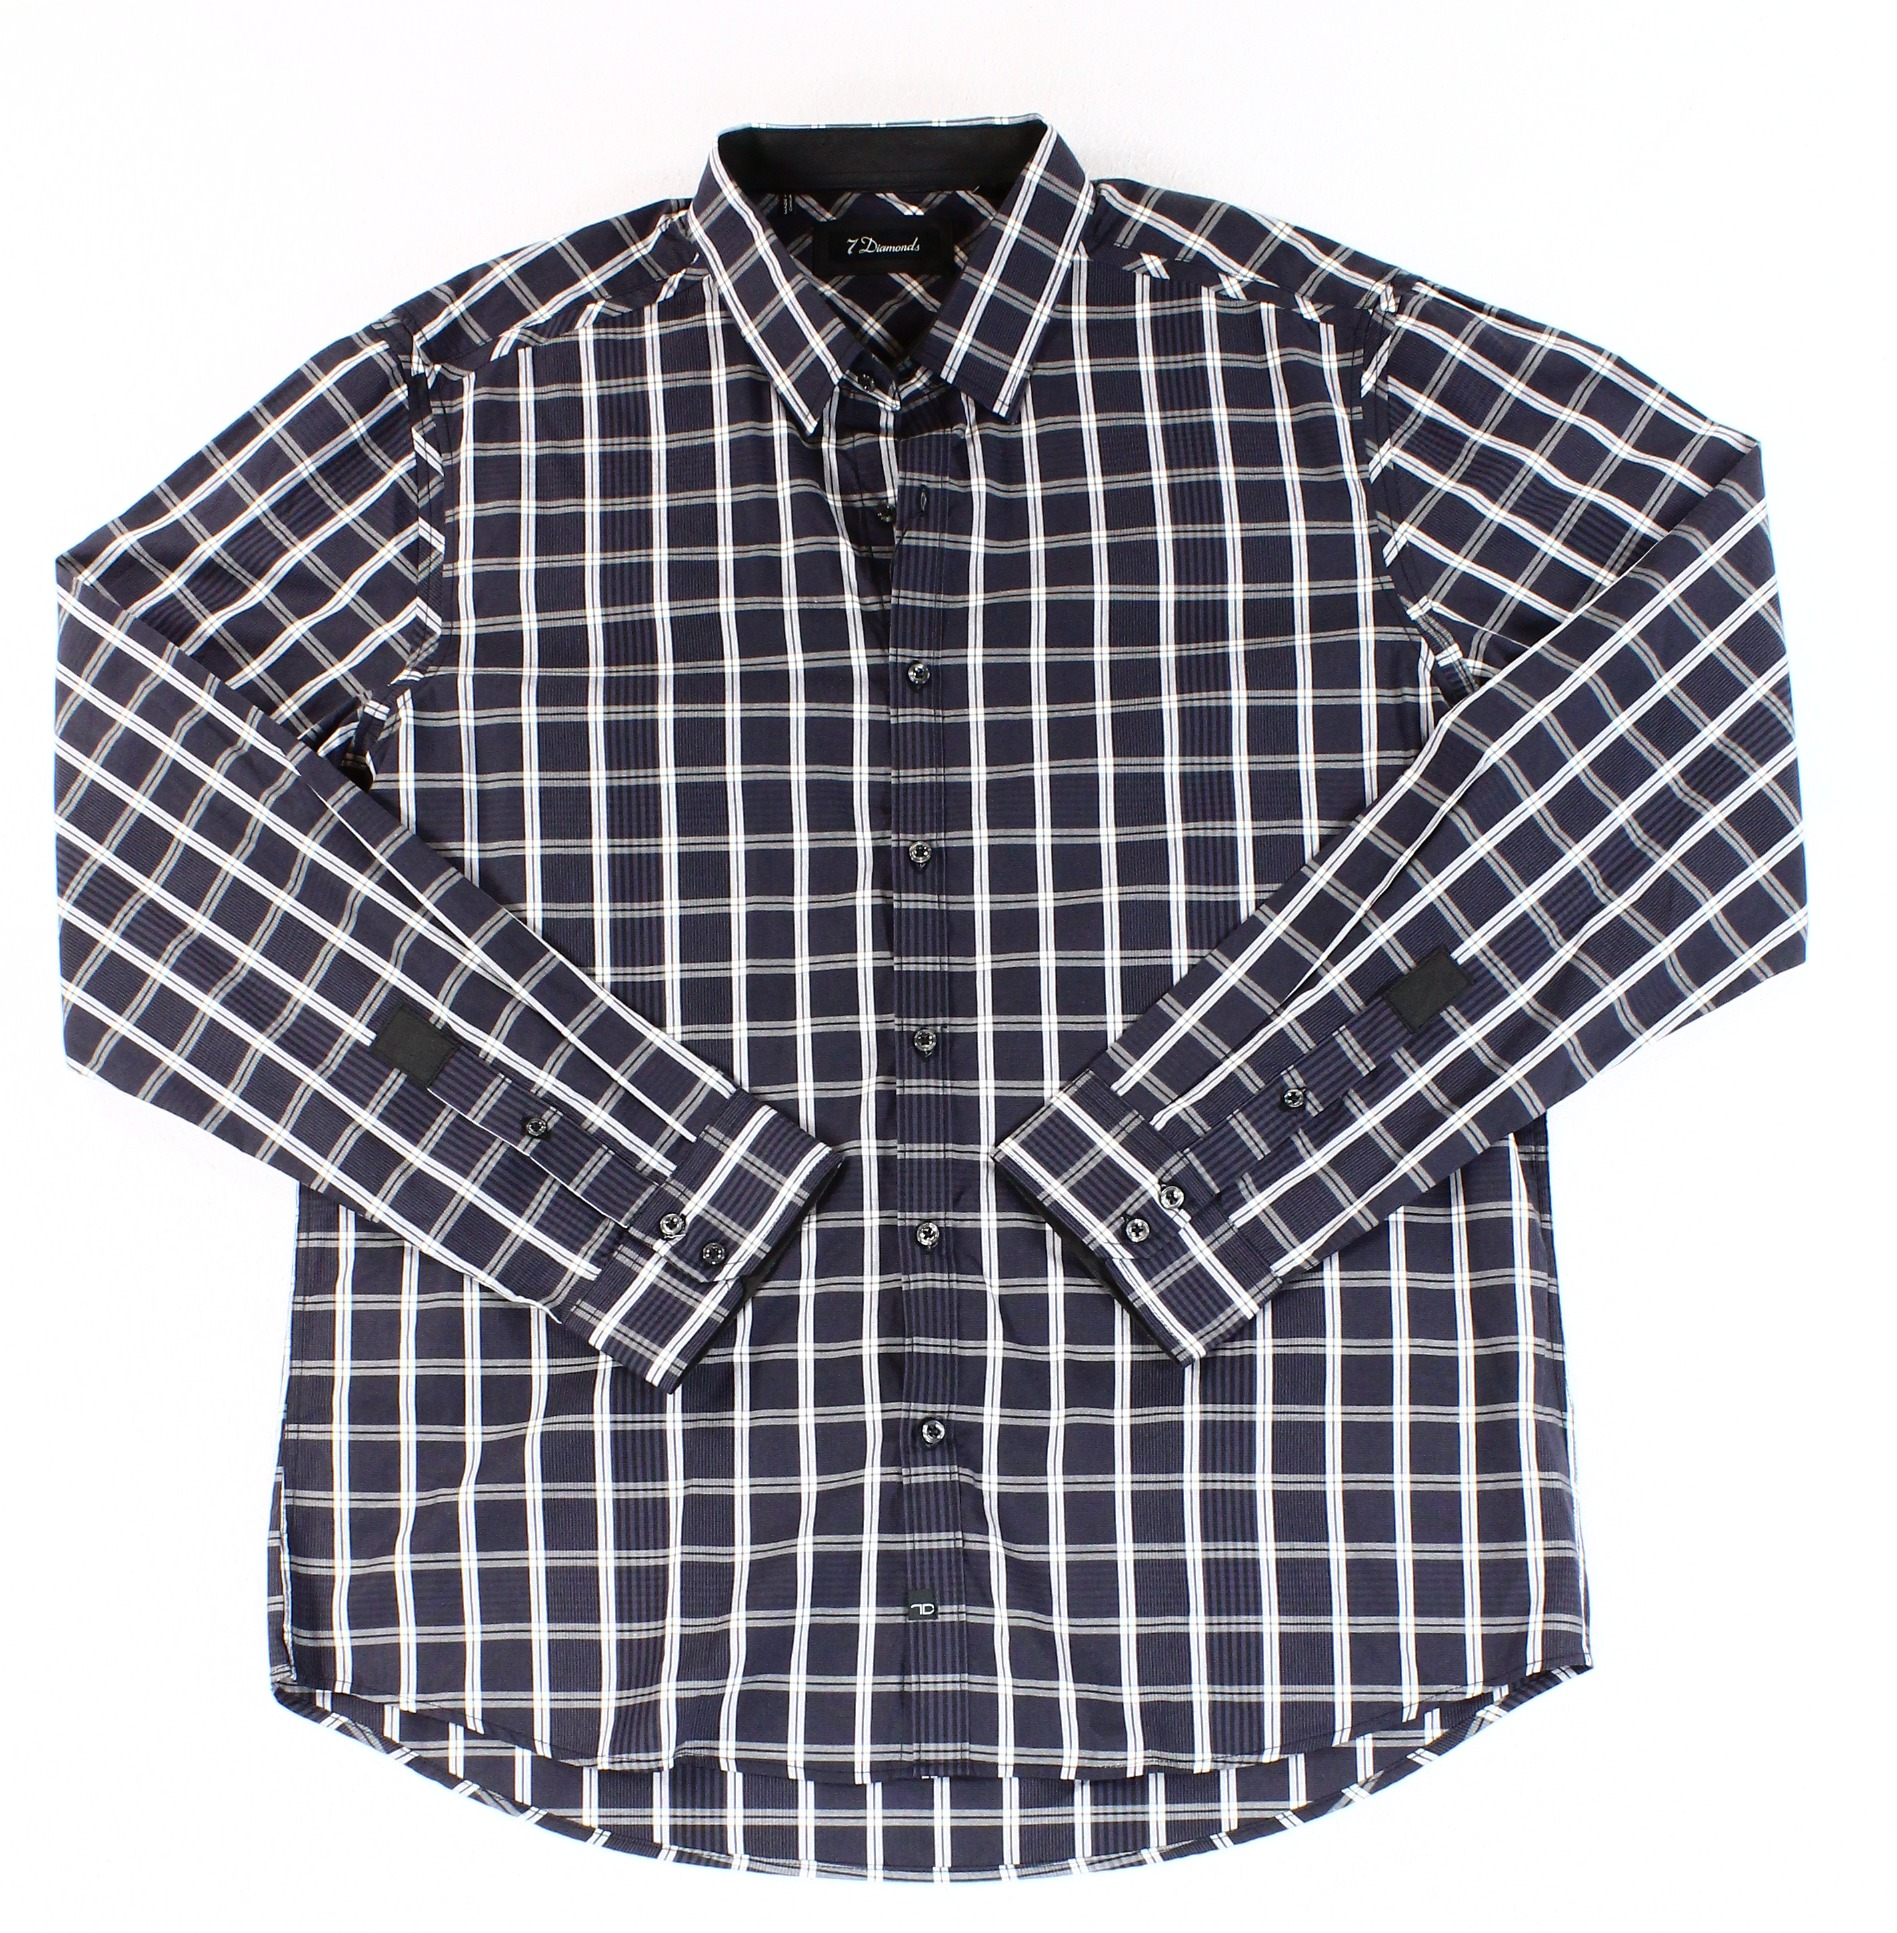 7 Diamonds NEW Black White Mens Size 2XL Button Down Shirt